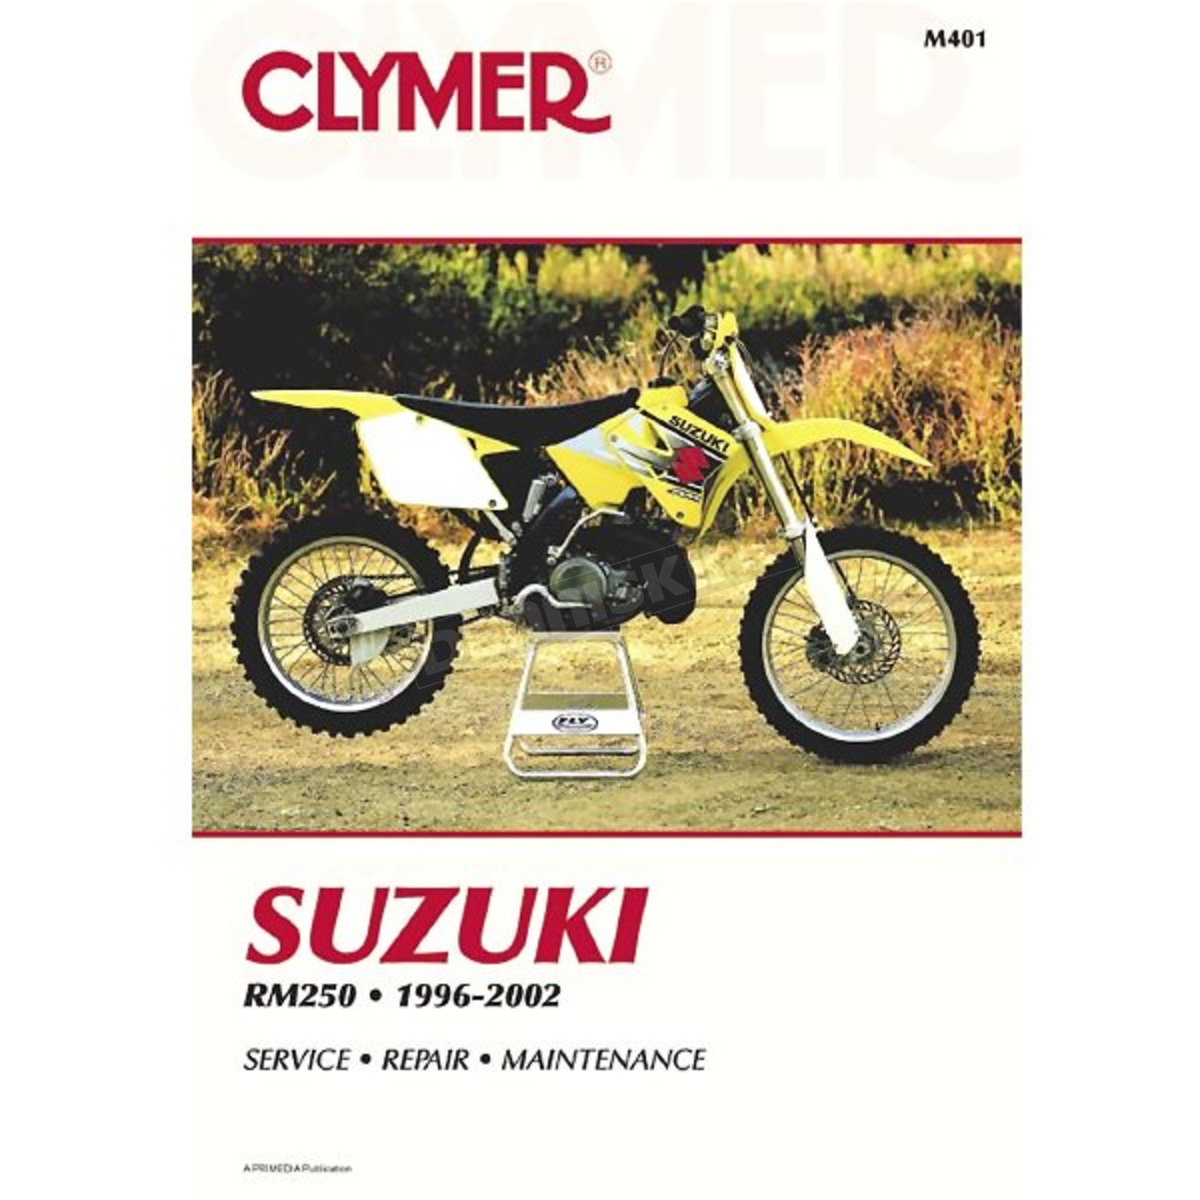 Clymer Suzuki Repair Manual - M401